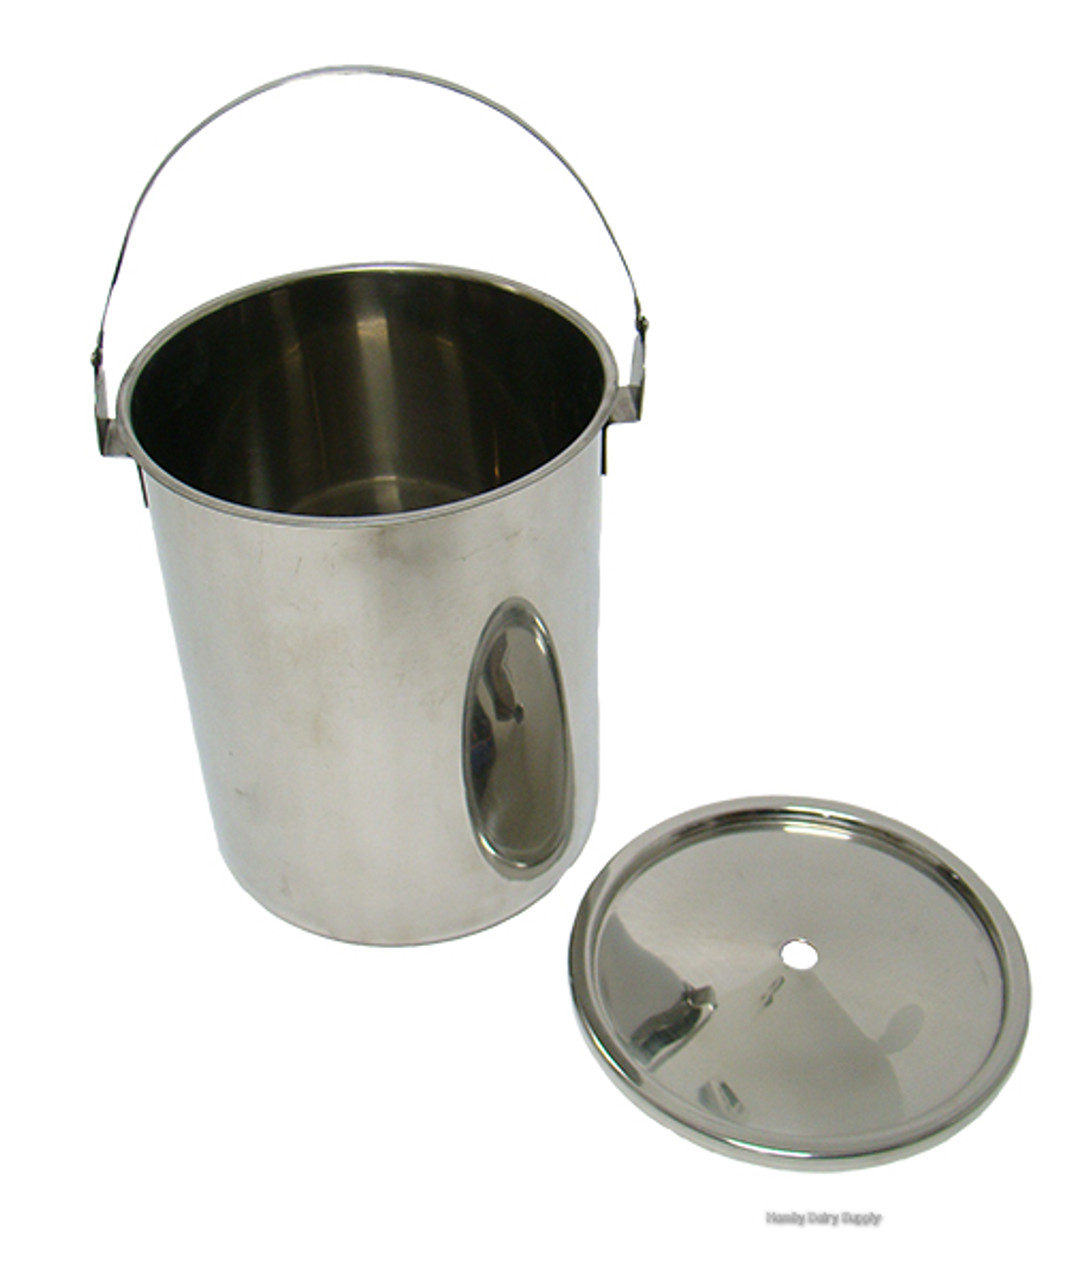 Stainless Steel Pail Lid For 2 Gallon Pasteurizer Hamby Dairy Supply